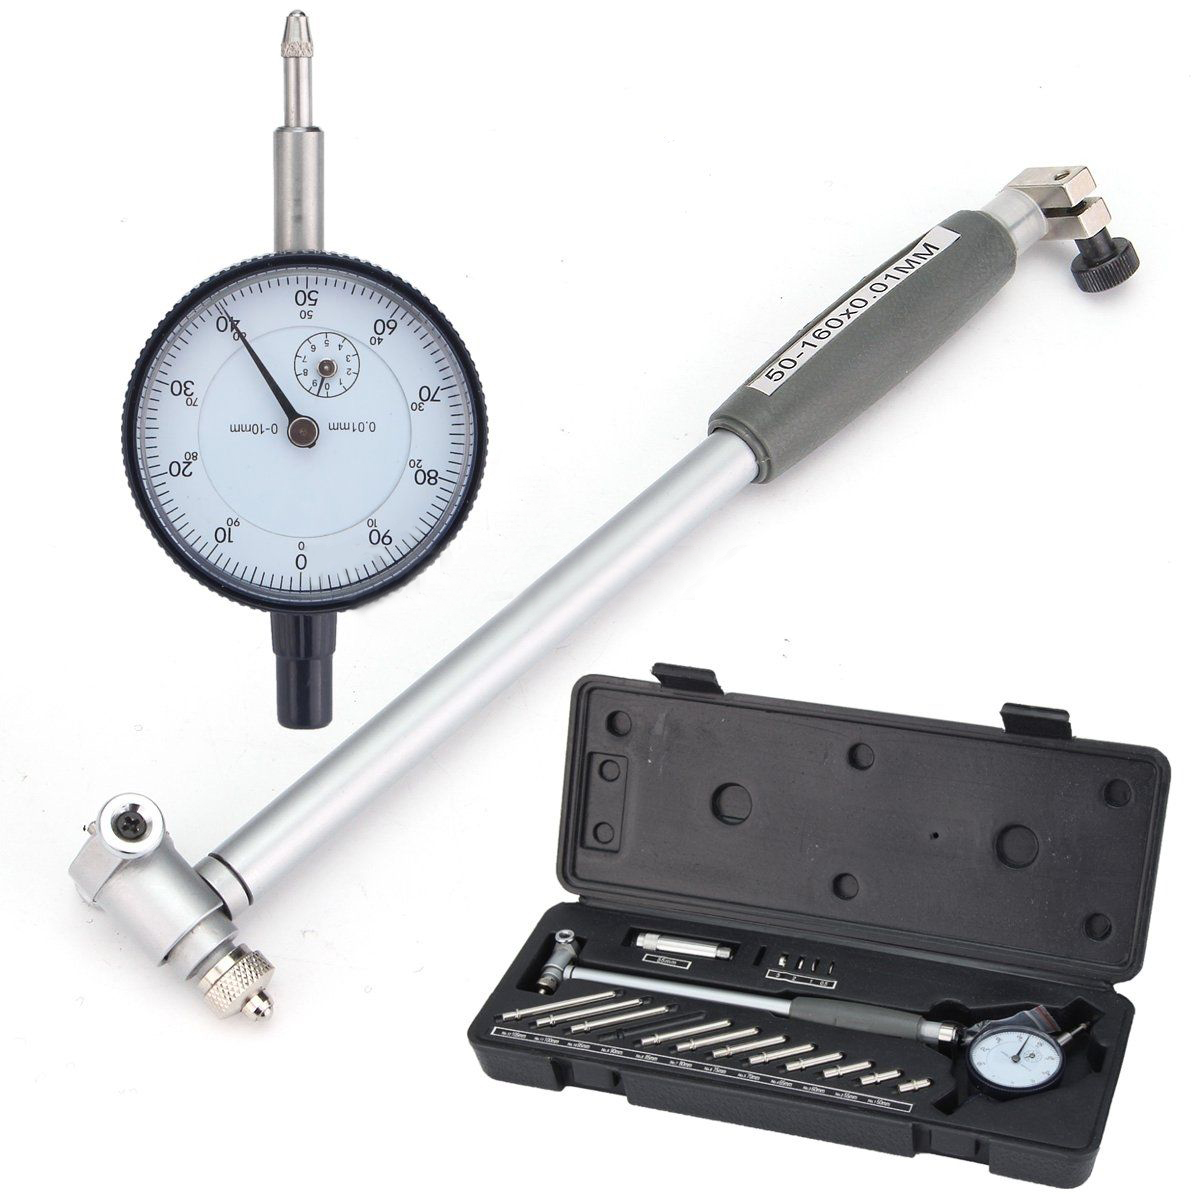 1Set Dial Bore Hole Diameter Gauge Metric 50mm-160mm Engine Cylinder Measuring Indicator Gage Kit with Box shan dial bore gauge 50 160mm 0 01mm metric cylinder internal bore measuring gage dial indicator measuring tools